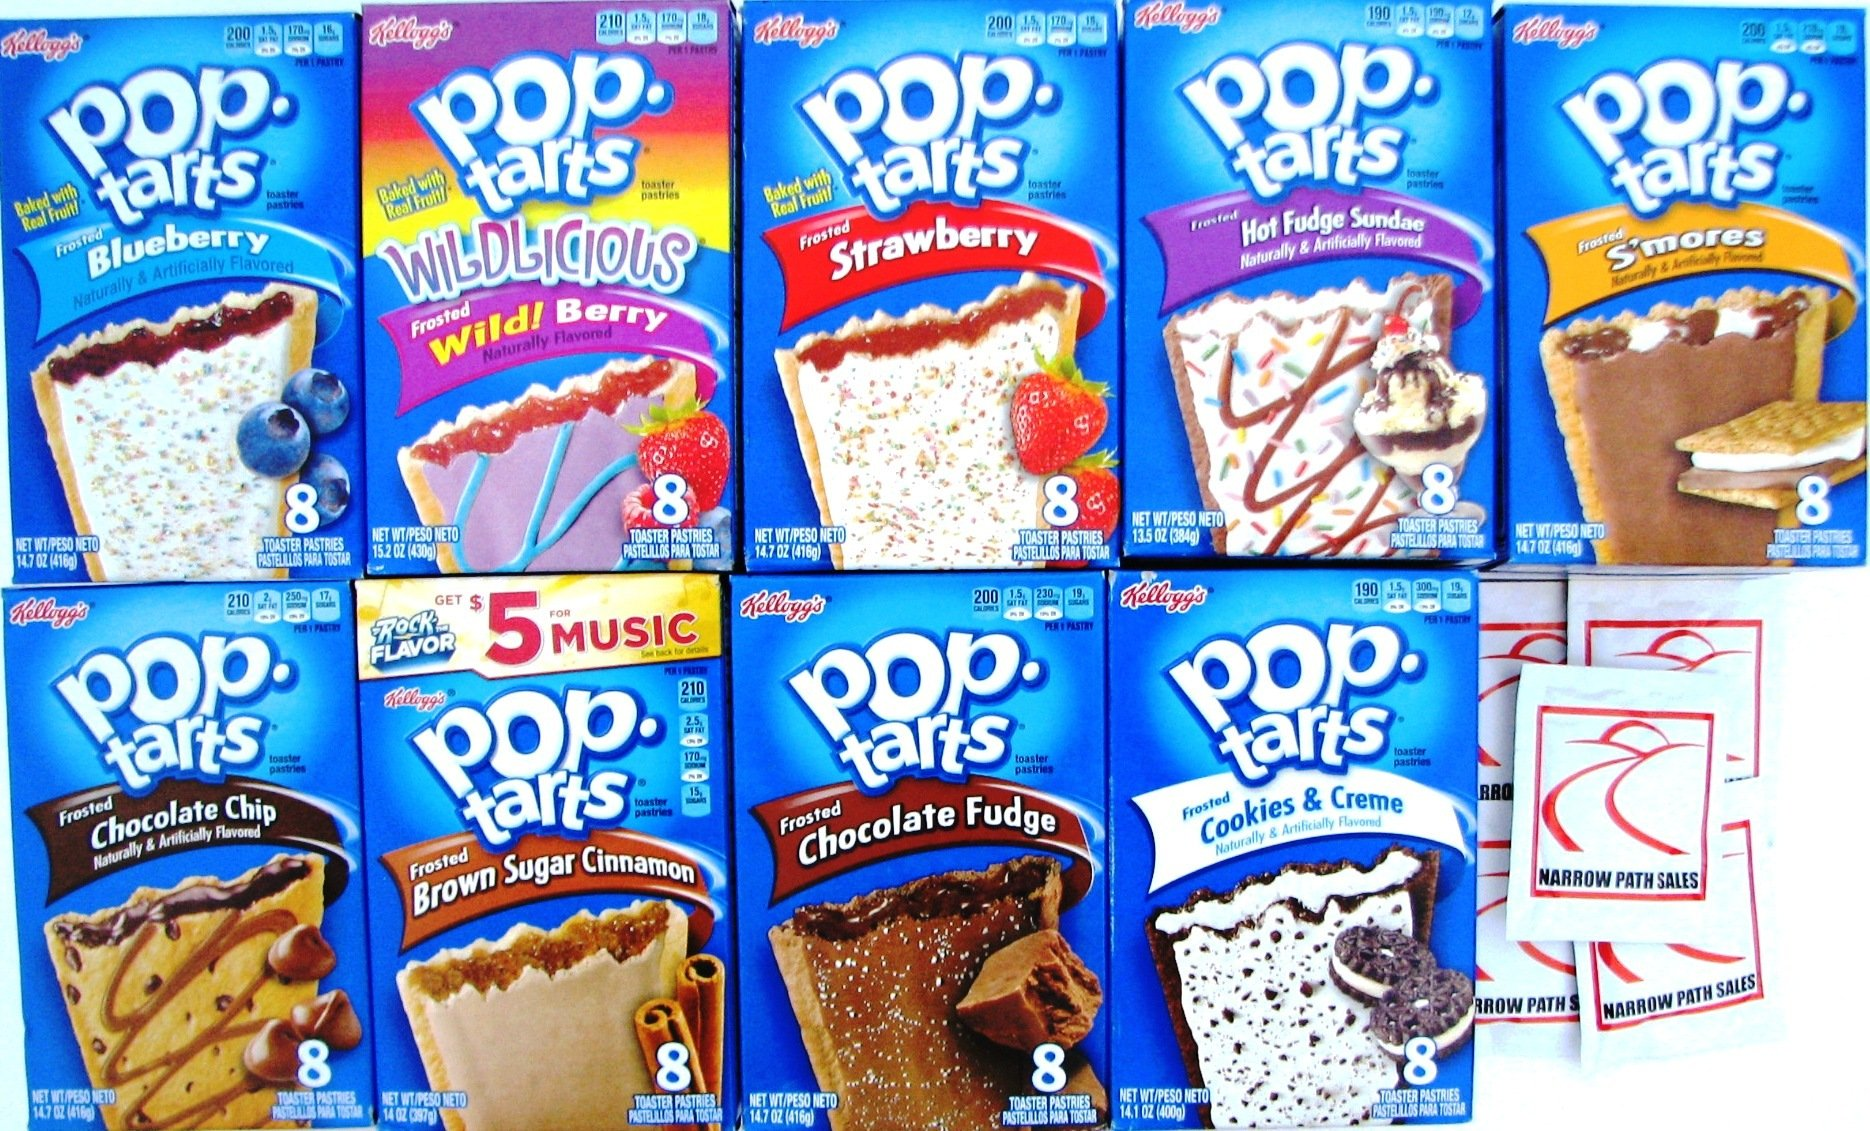 9 Pack! The Ultimate Pop Tarts Variety Pack 9 Flavors - Bundle of 9 Boxes, 1 of Each Flavor. by Narrow Path Sales (Image #5)